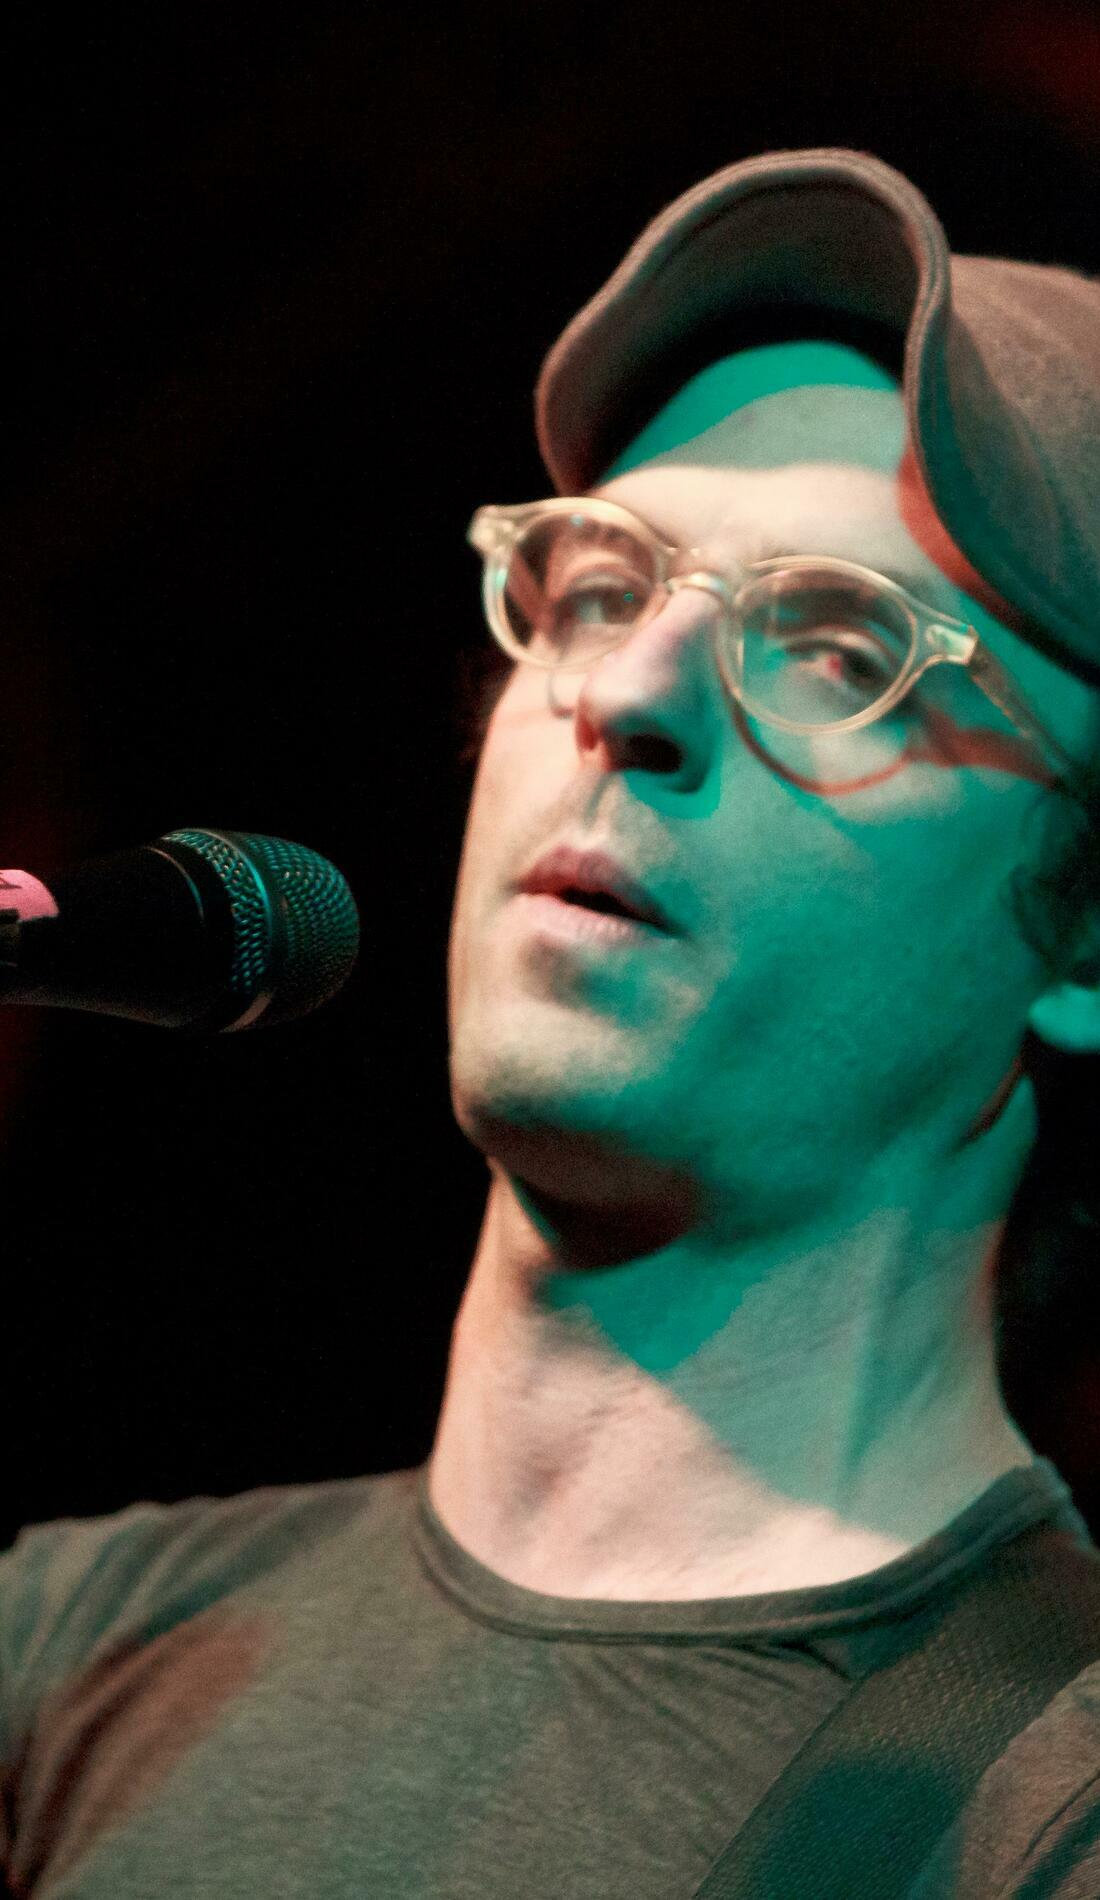 A Clap Your Hands Say Yeah live event